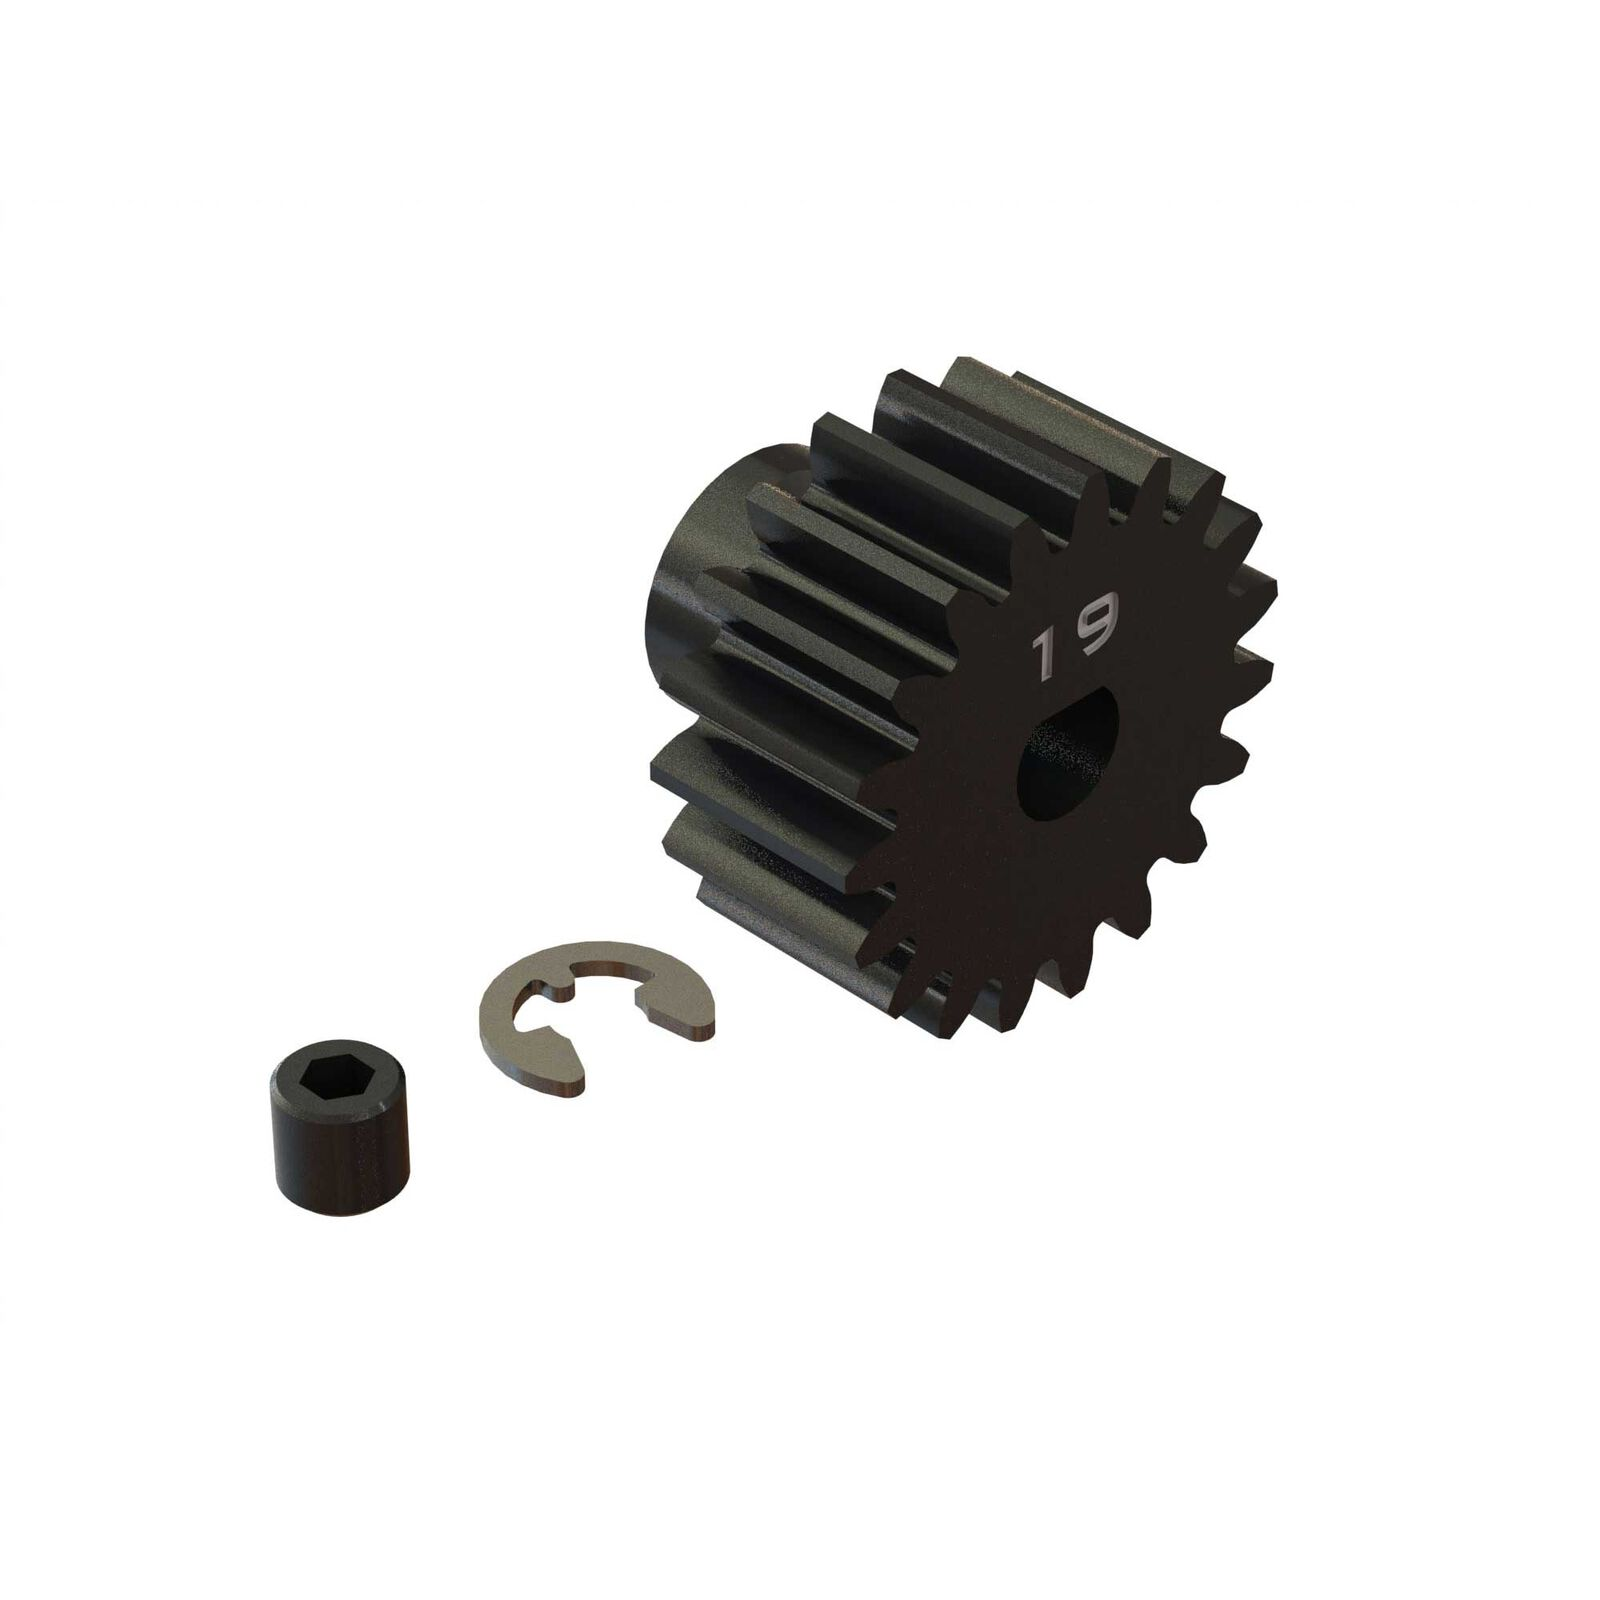 Pinion Gear, 19T HD Mod1 Safe-D5